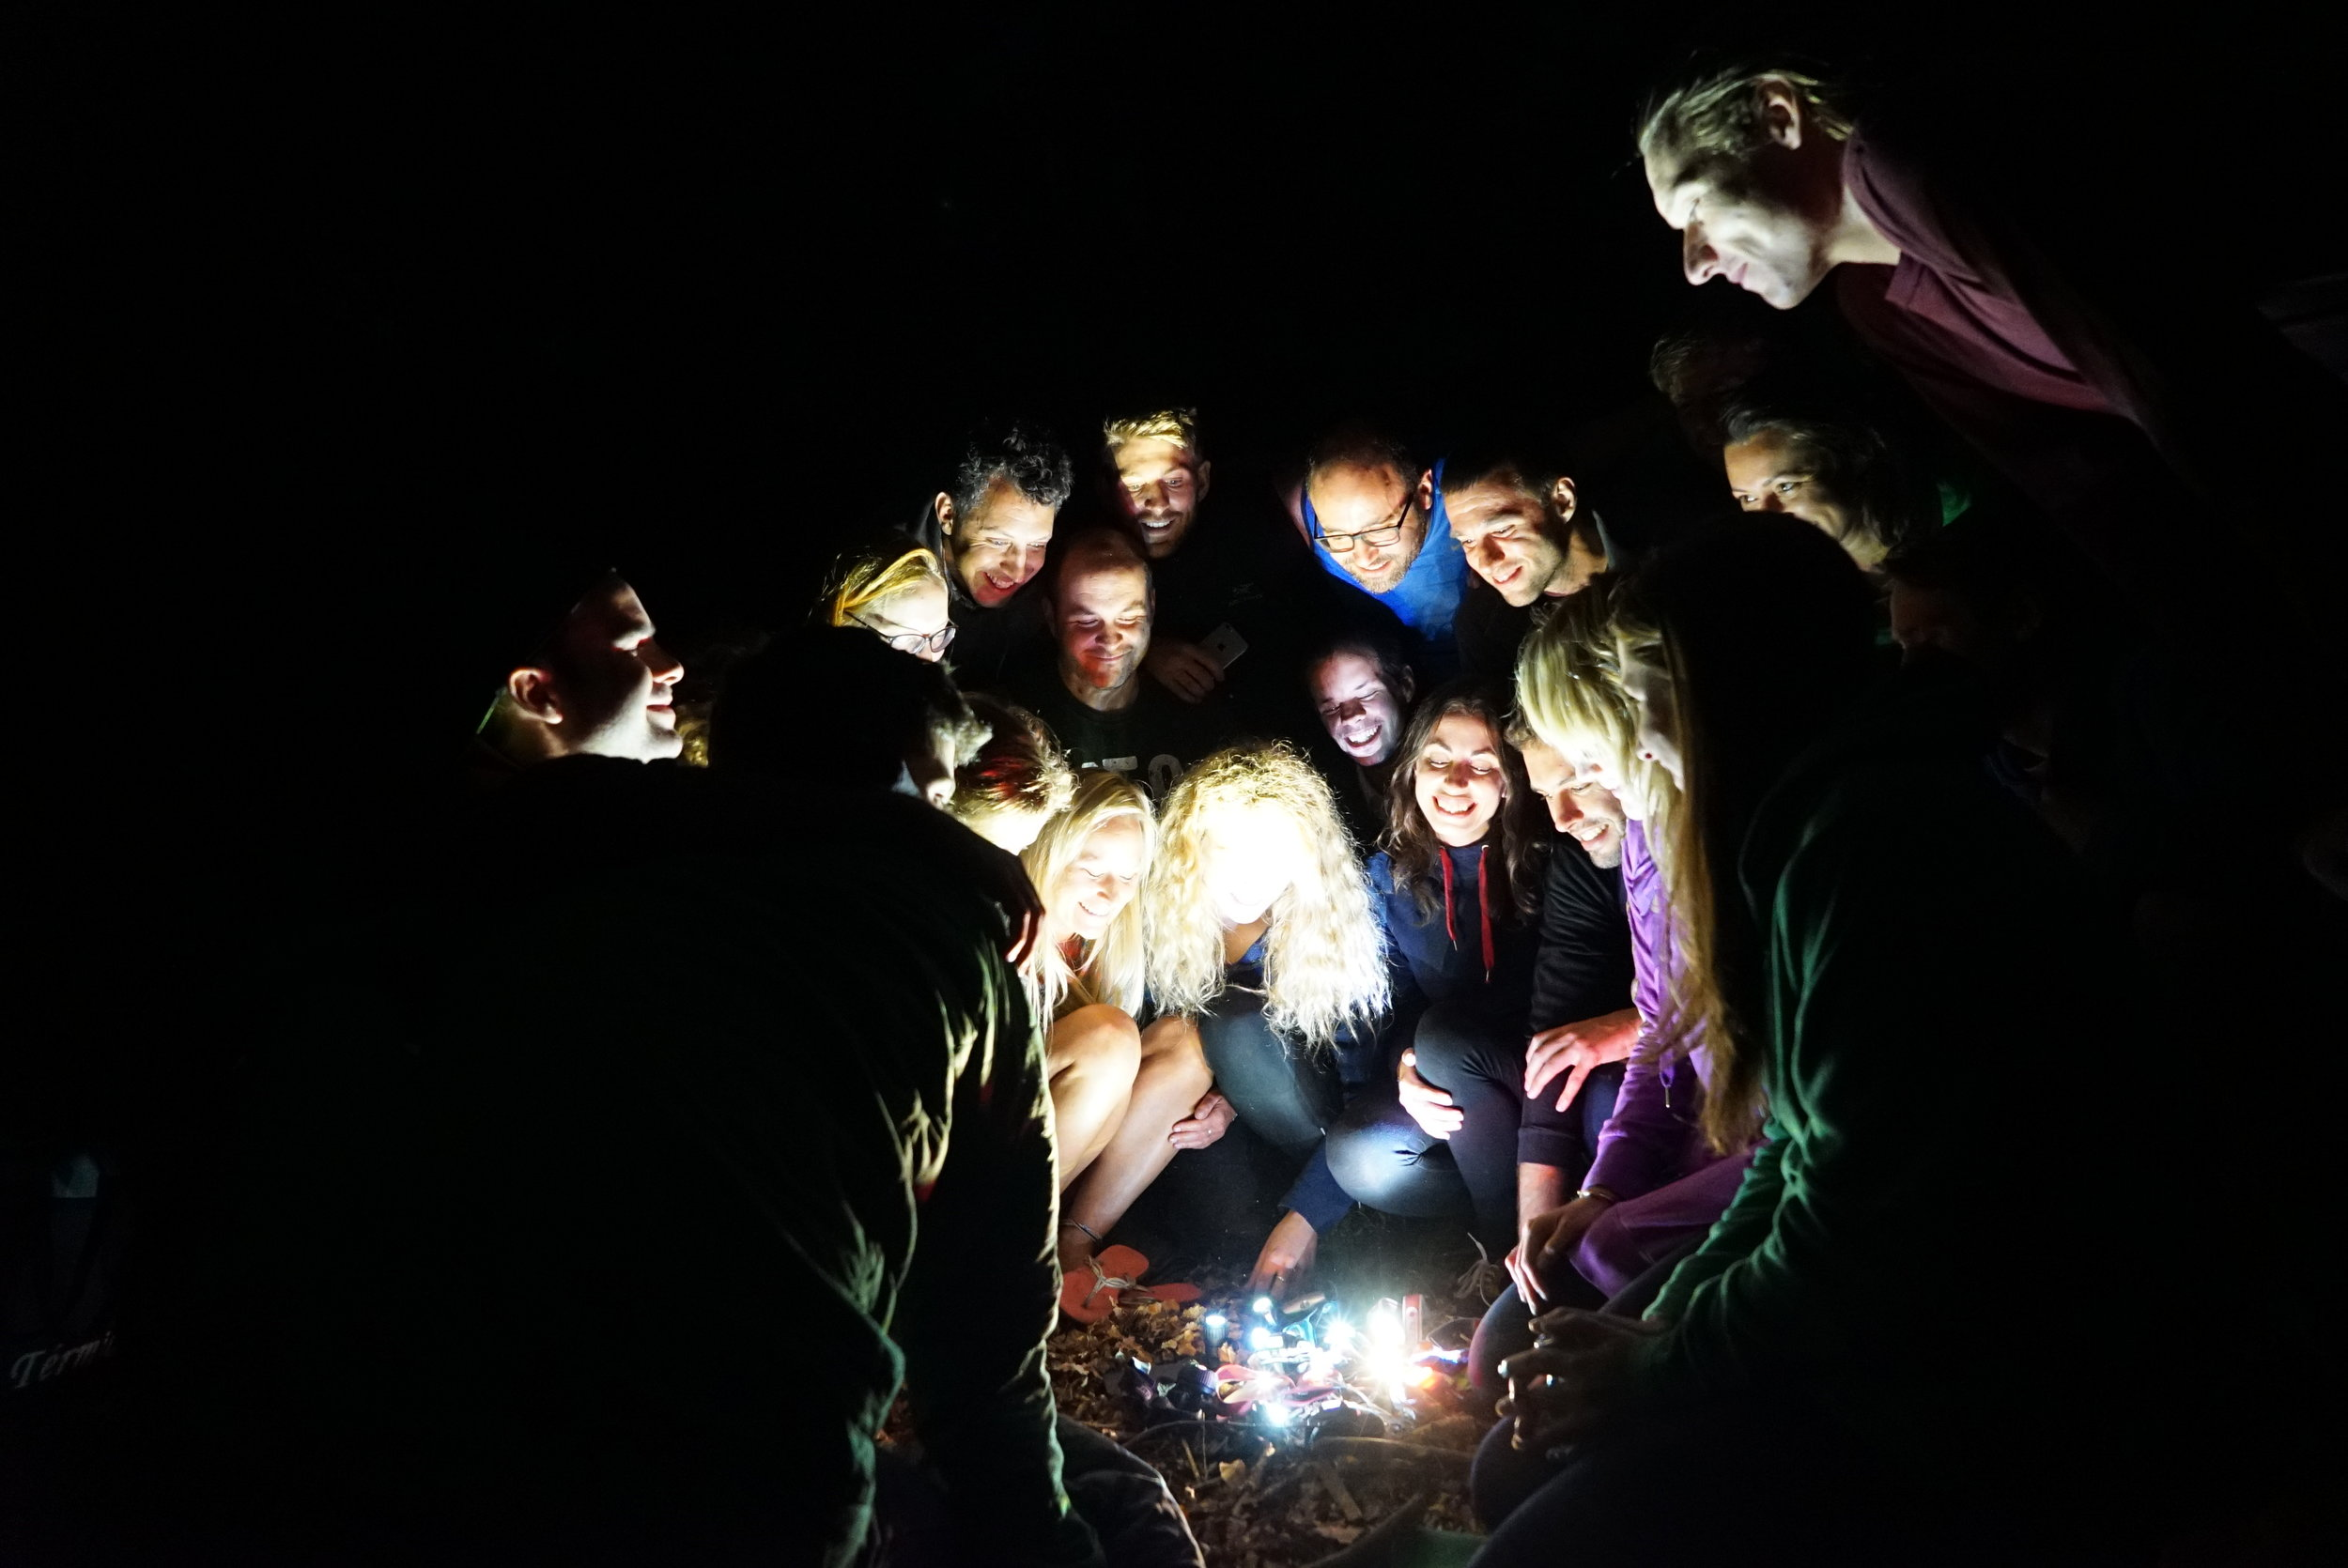 A group of people on a wild camp surrounding a pile of headtorches on the ground, which look a bit like a campfire!